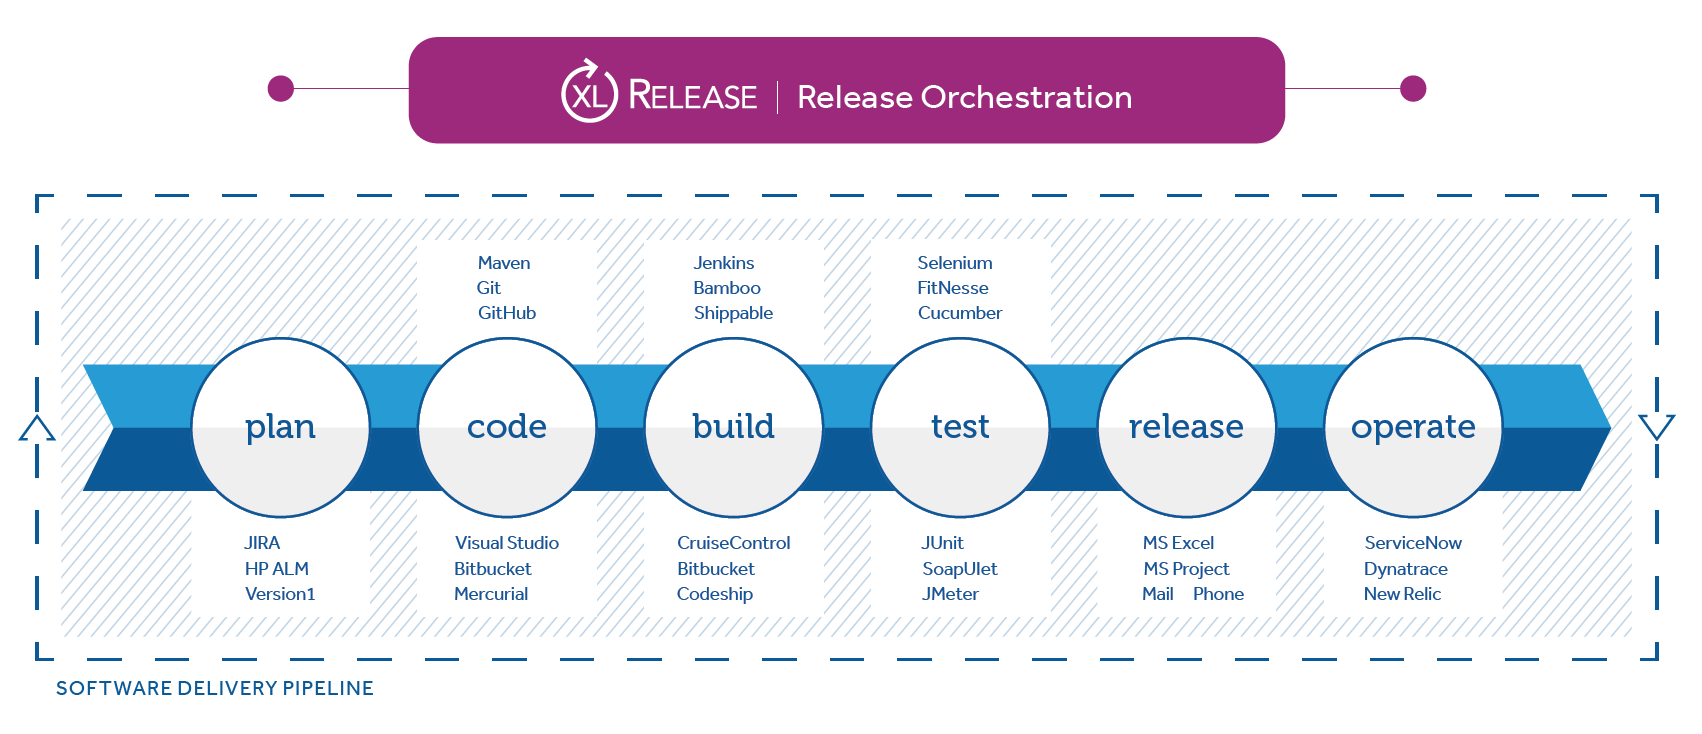 XL Release release pipeline orchestration software demonstrated at Jenkins World